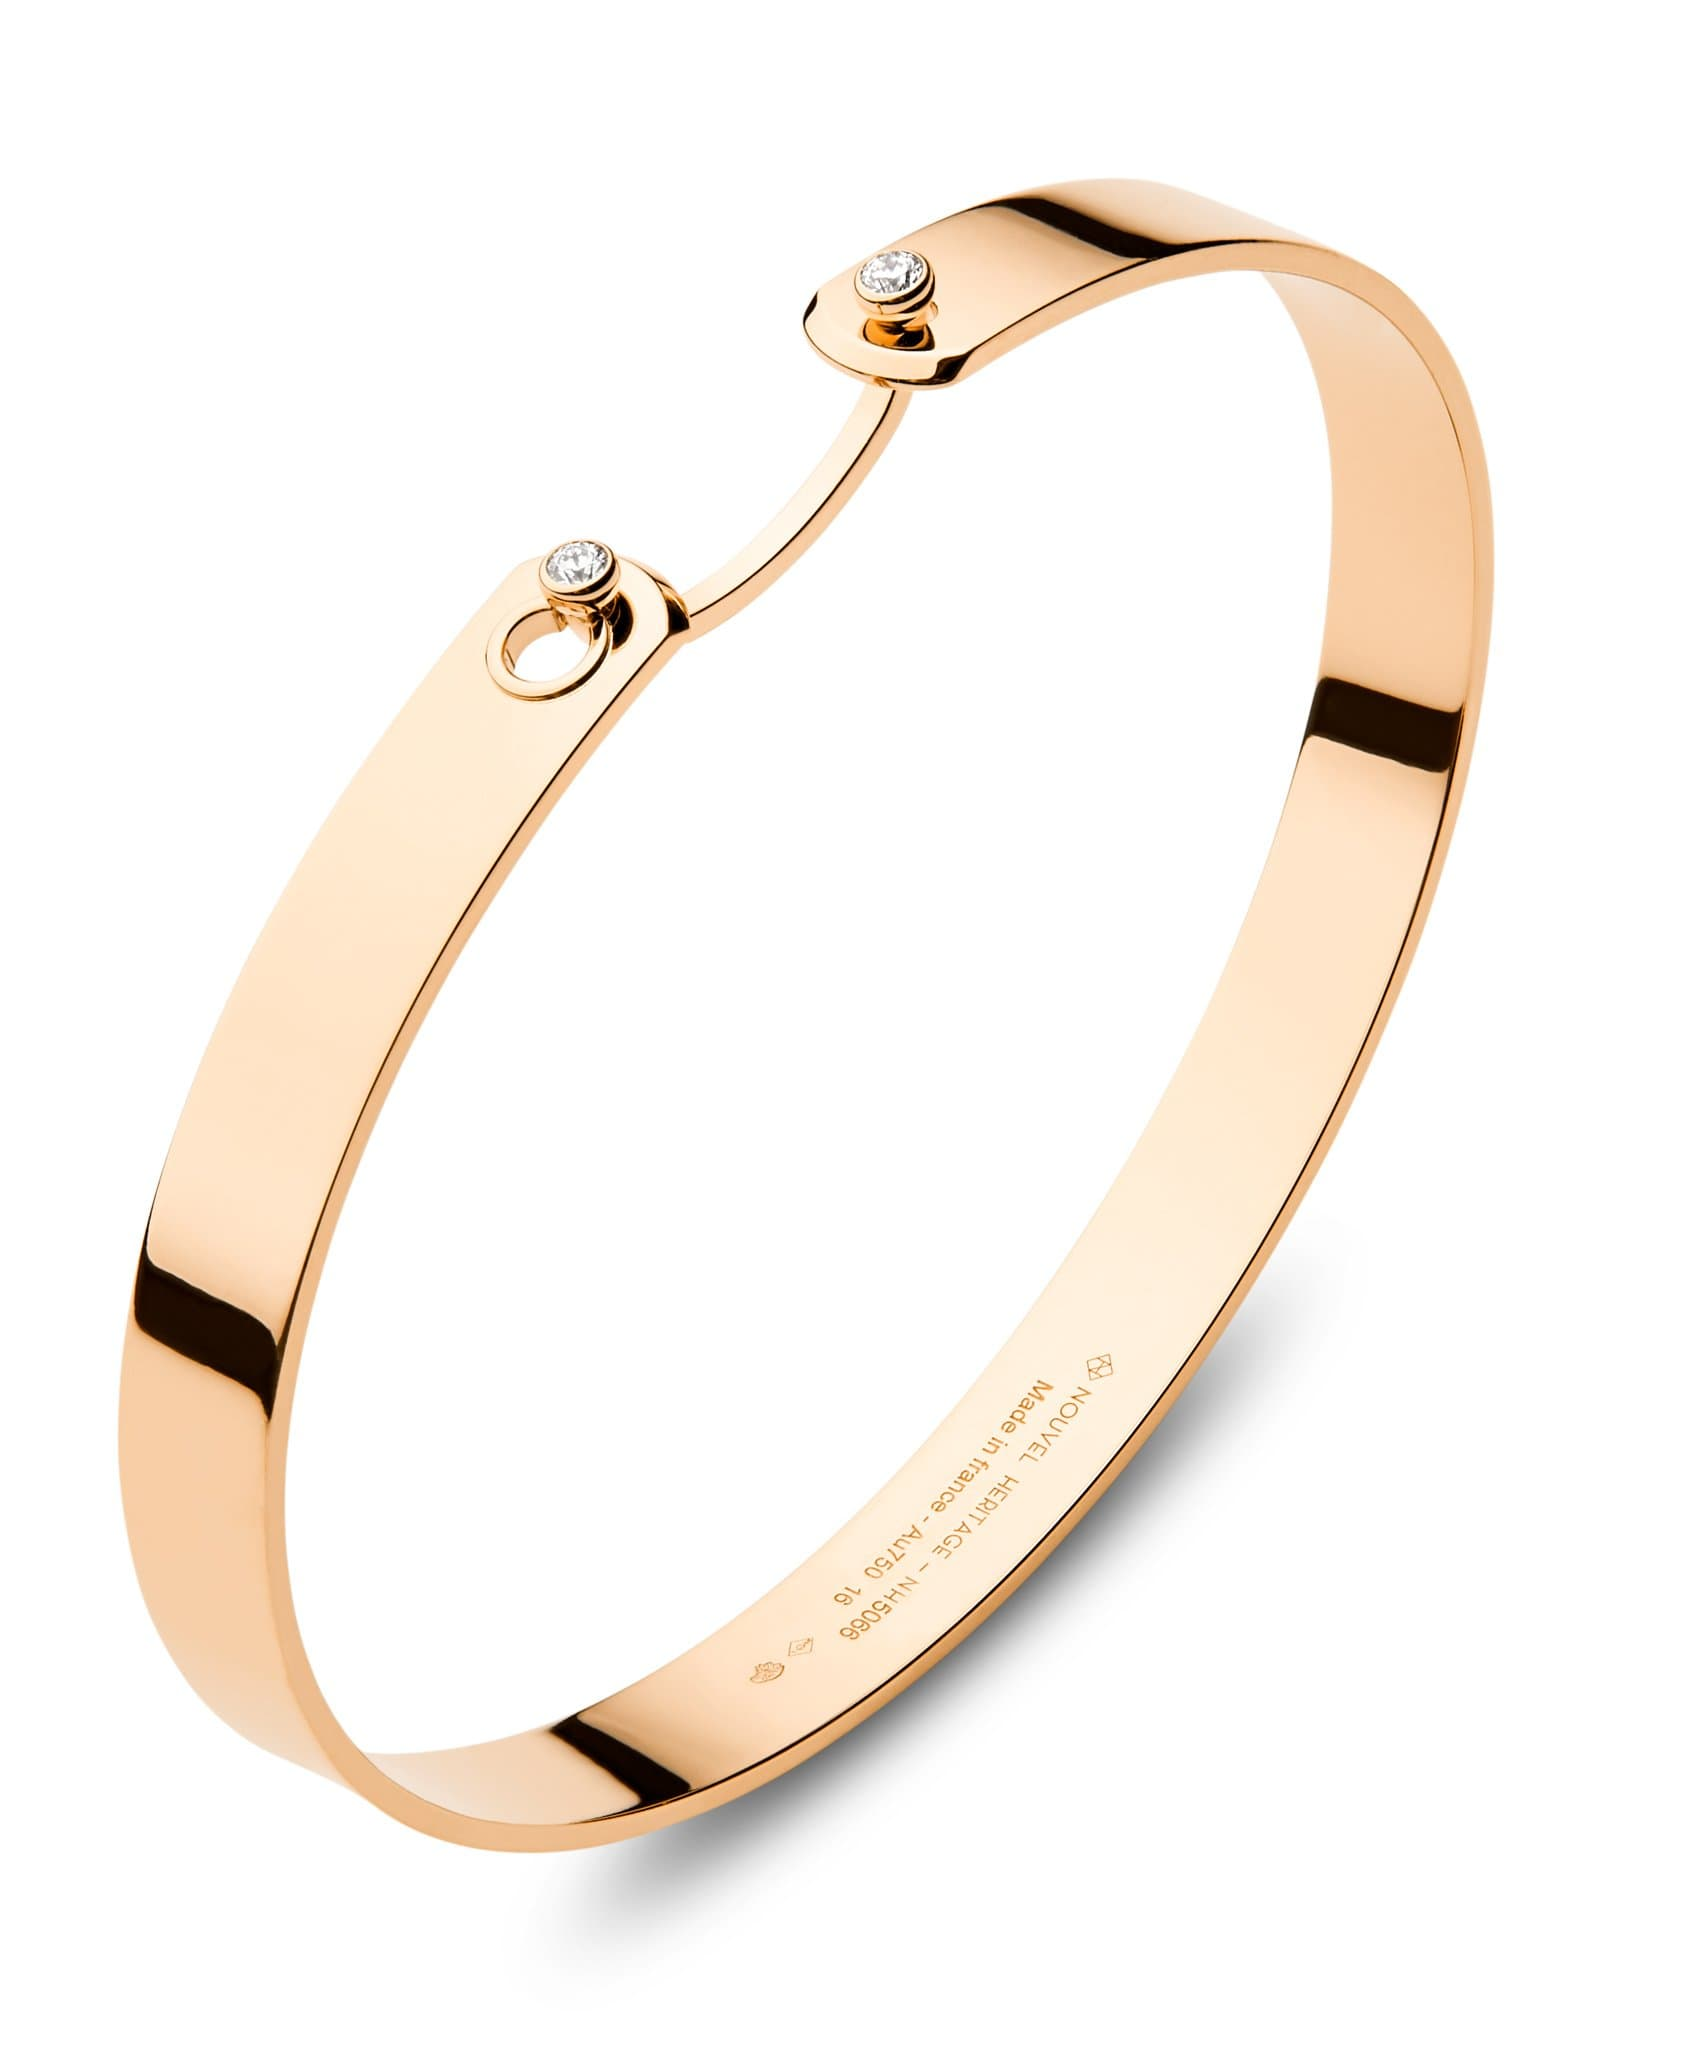 Monday Morning GM Mood Bangle: Discover Luxury Fine Jewelry | Nouvel Heritage || Rose Gold